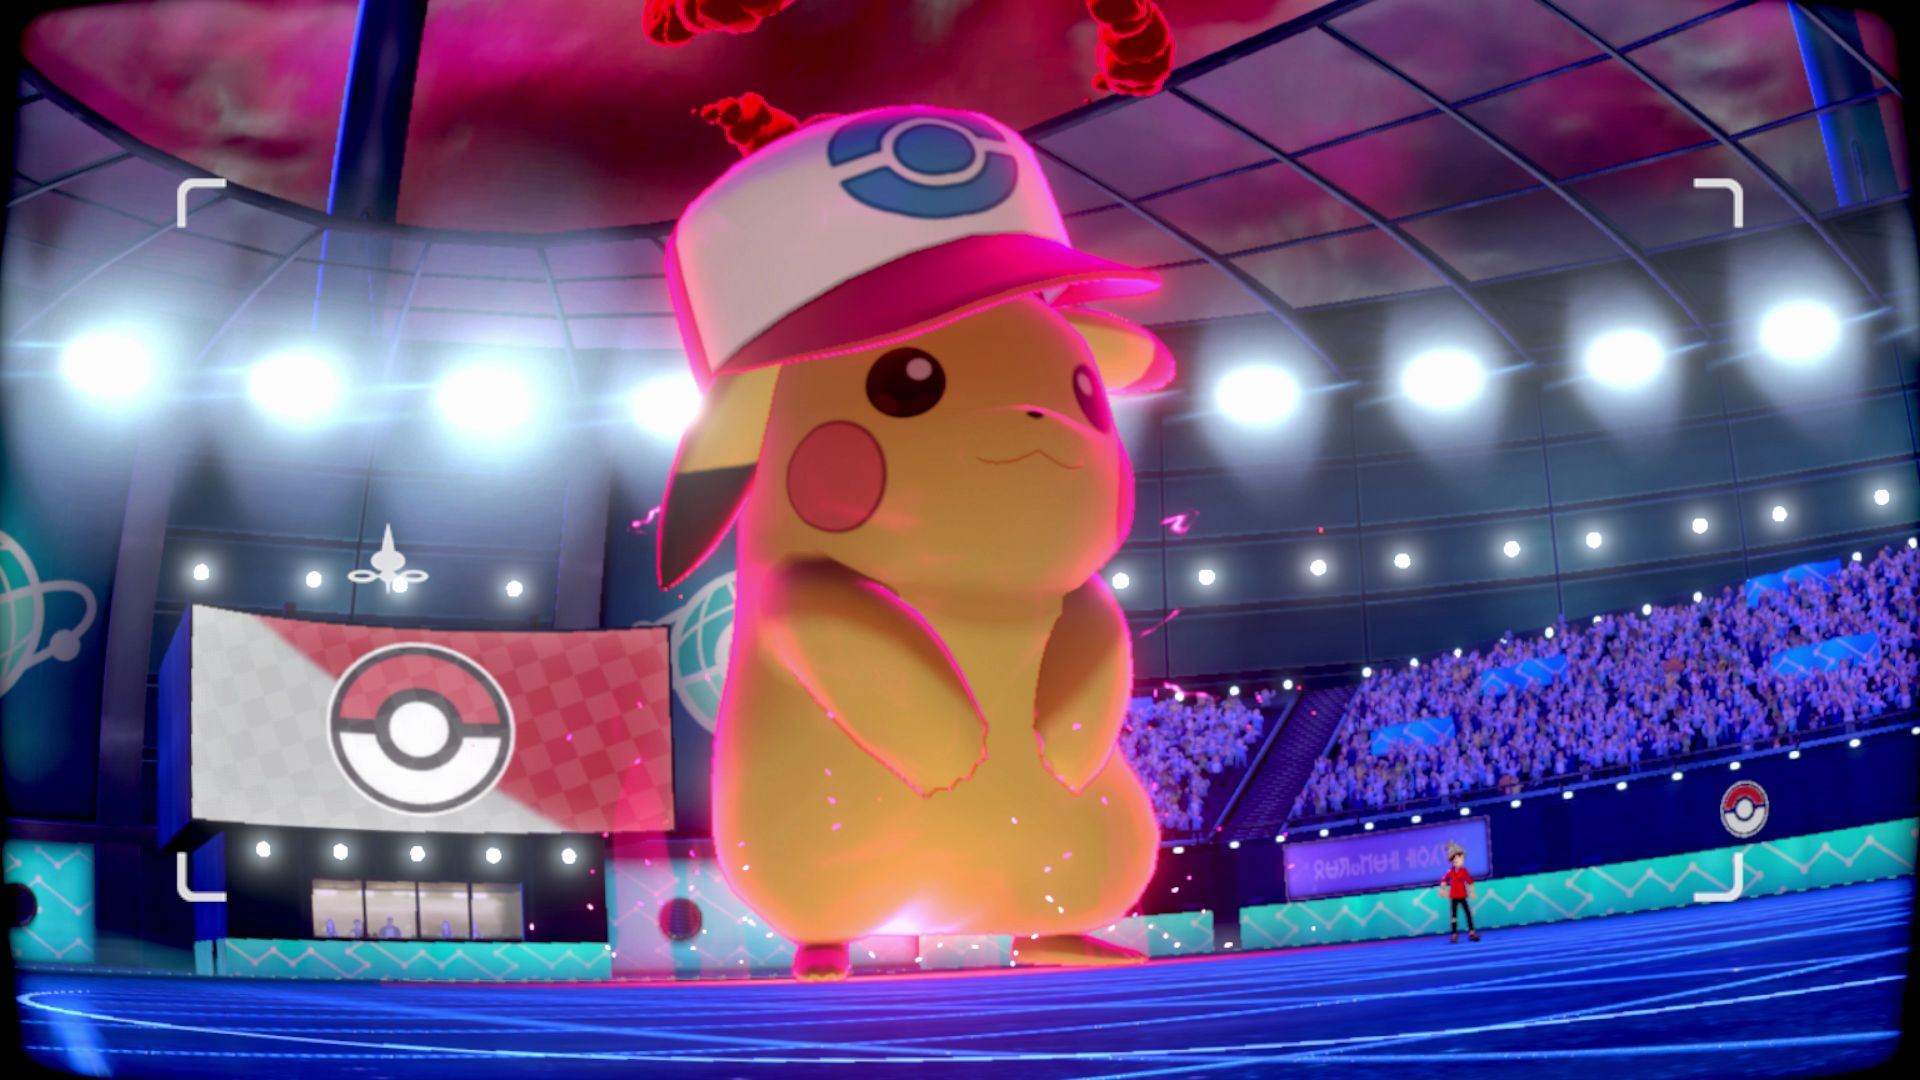 Gigantamax Pikachu takes the stage in Pokemon Sword and Shield.